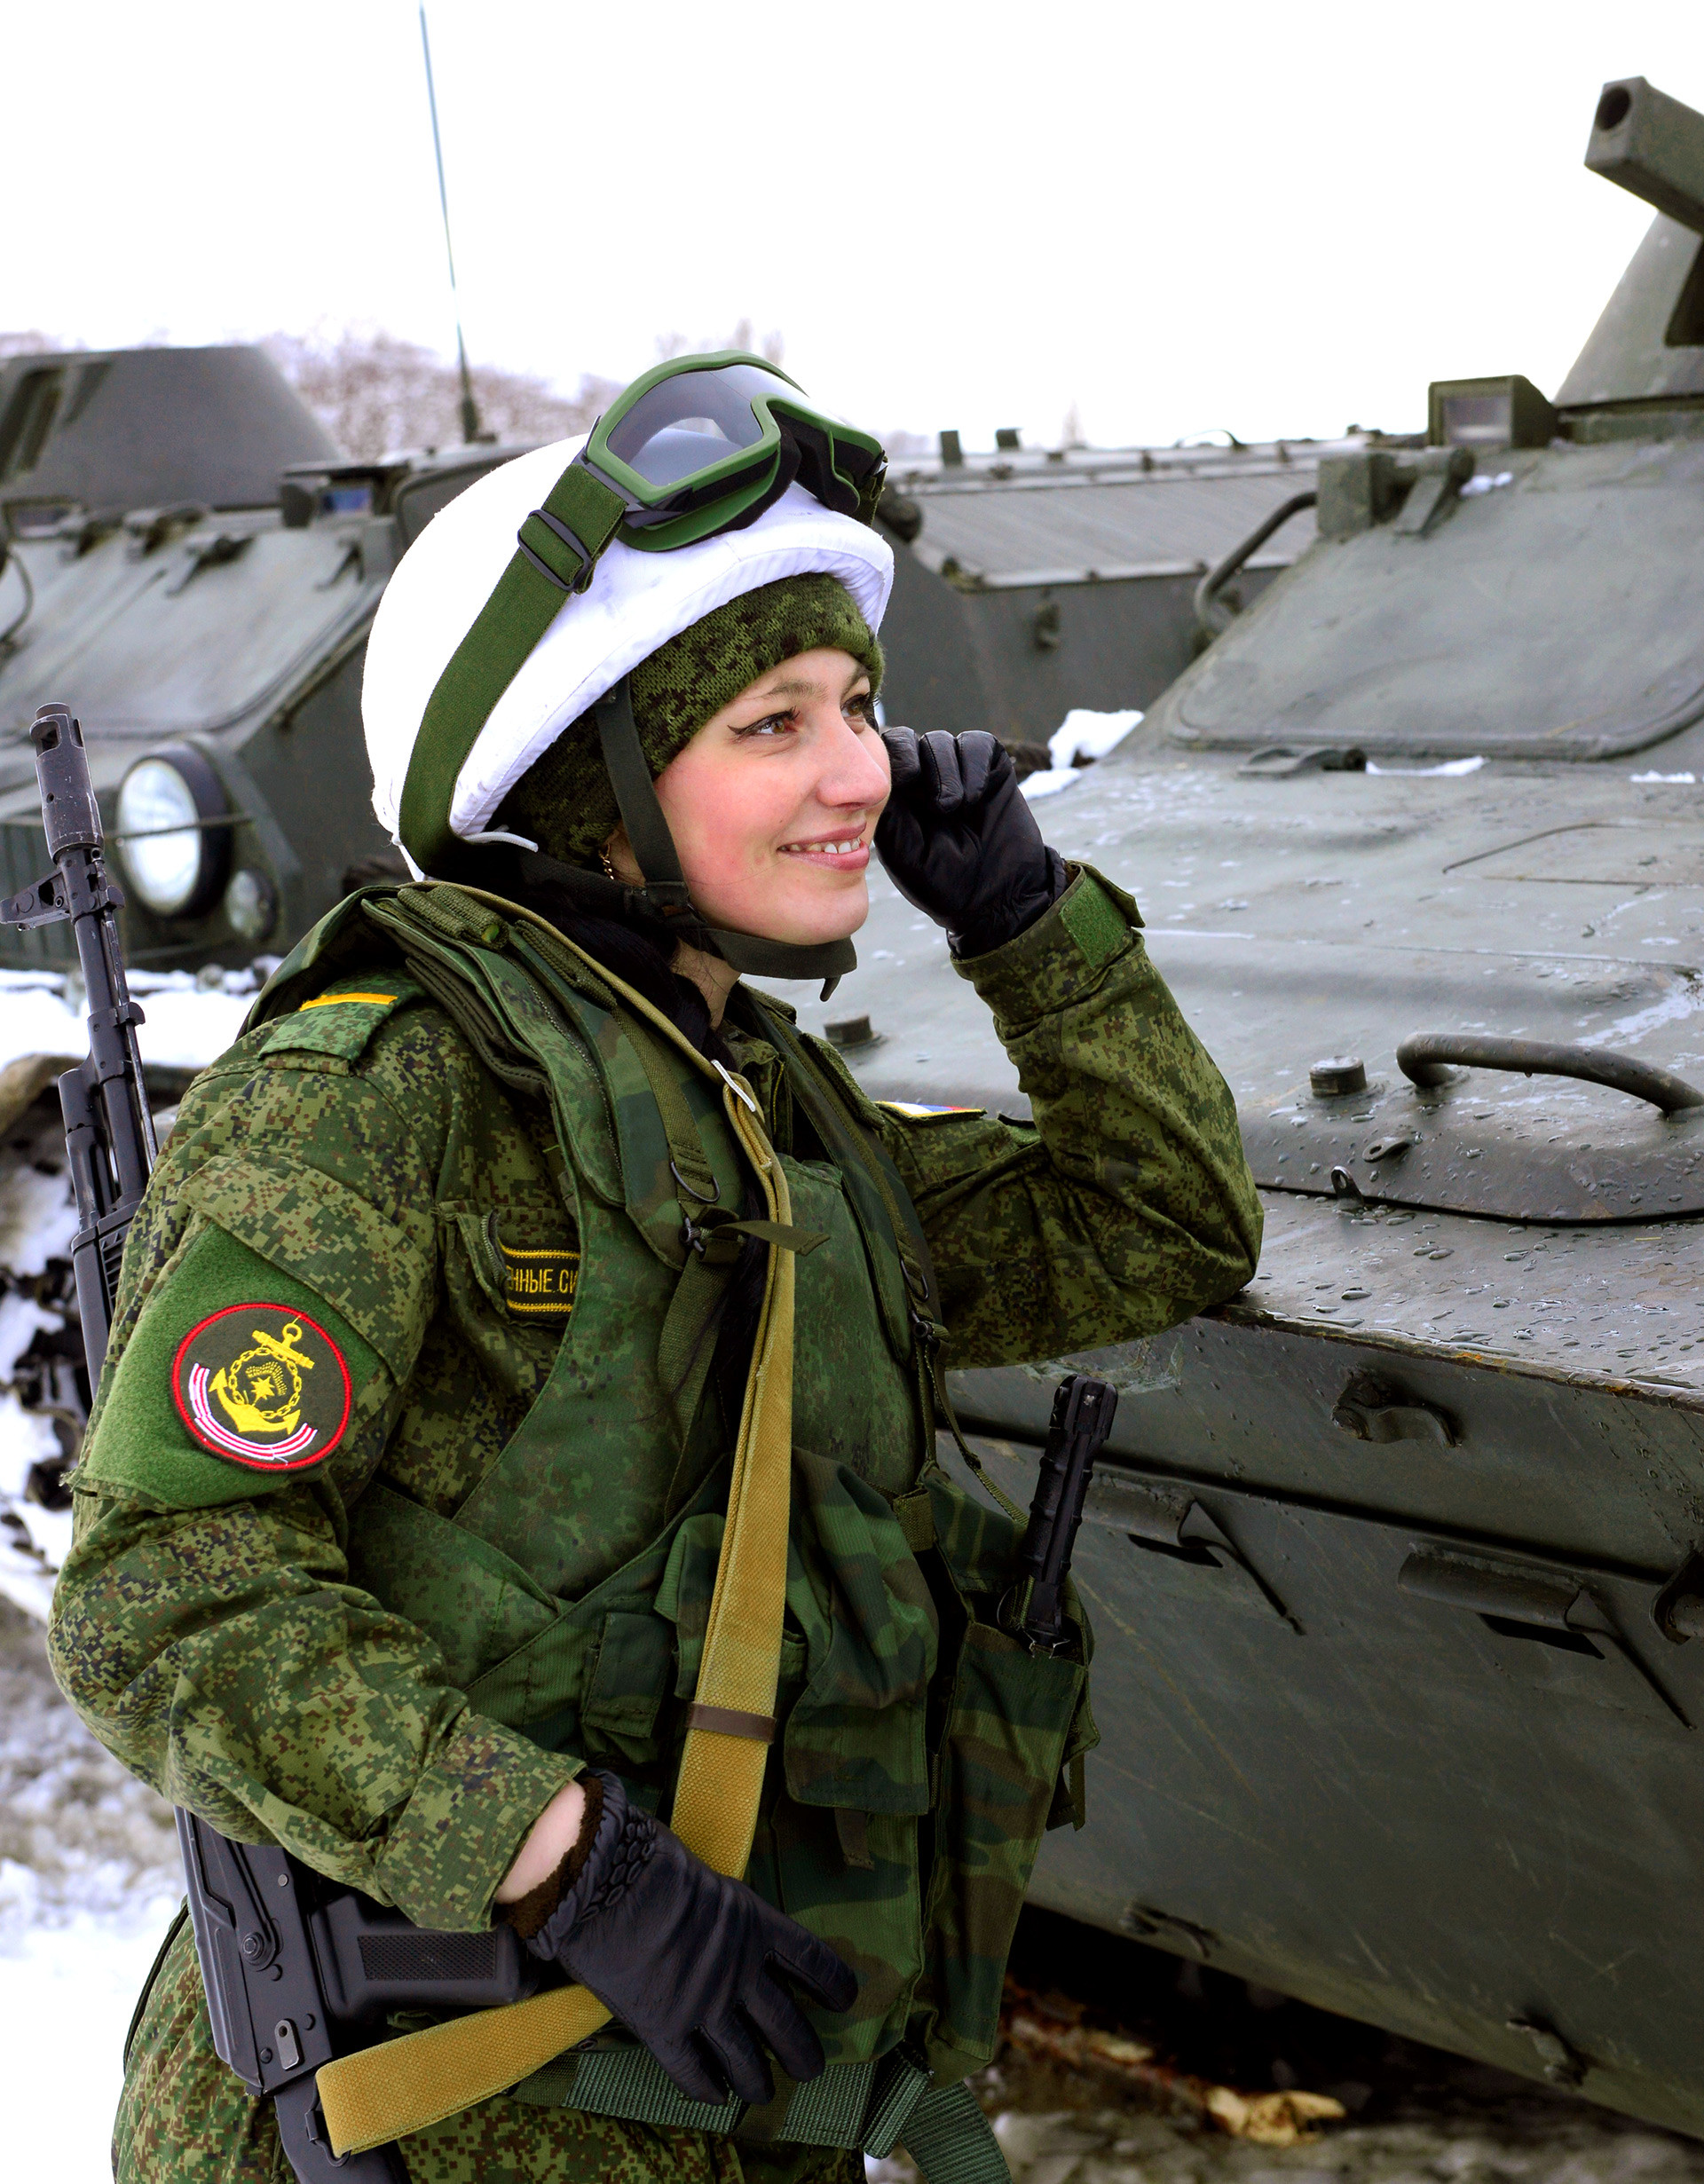 Amazon Warriors Fotos russia's amazon warriors: why are women joining the